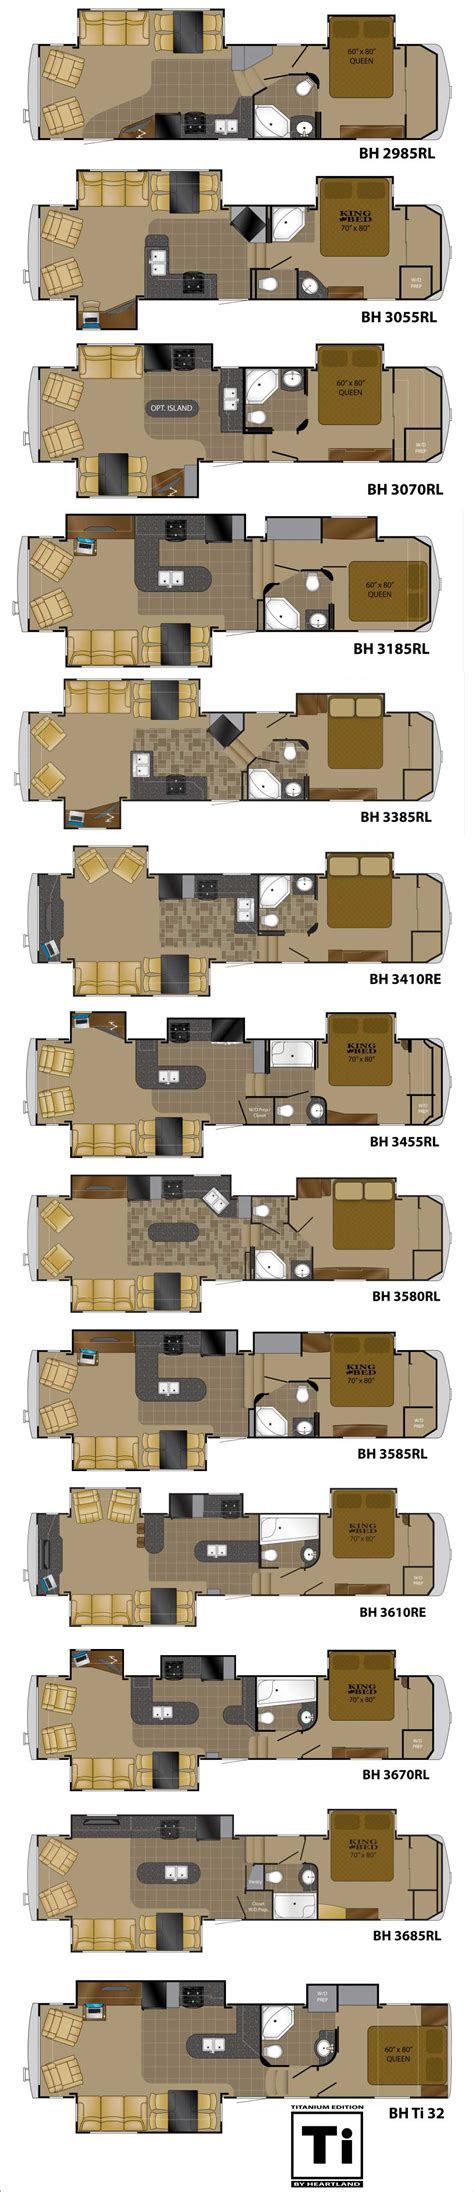 heartland 5th wheel floor plans heartland bighorn fifth wheel floorplans large picture